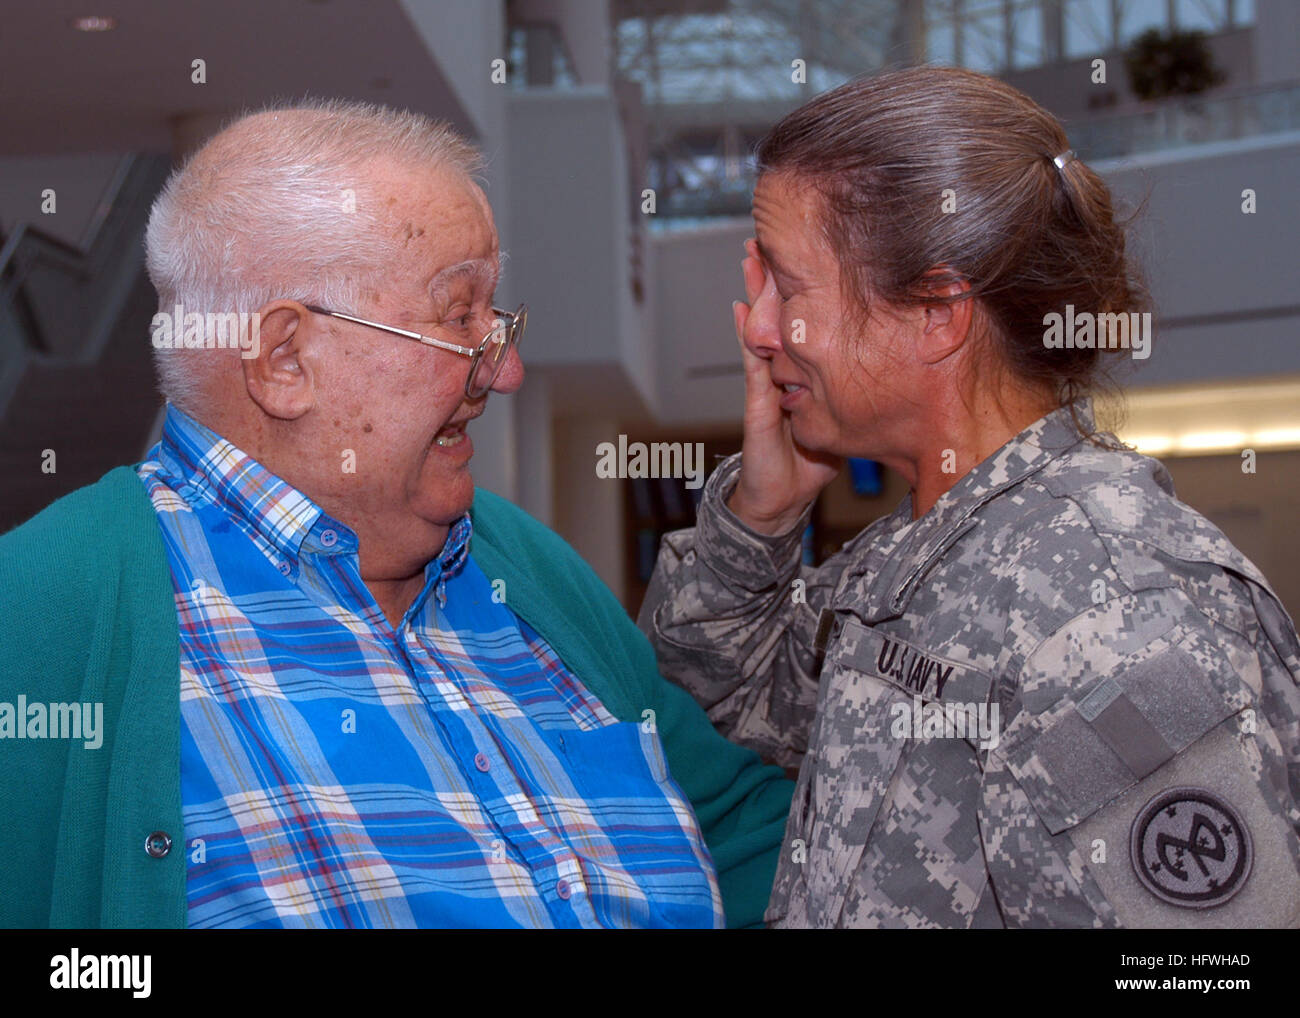 081113-N-2555T-046 BALTIMORE, Md. (Nov. 13, 2008) Chief Storekeeper Marie Toffolo cries as she is greeted by her - Stock Image